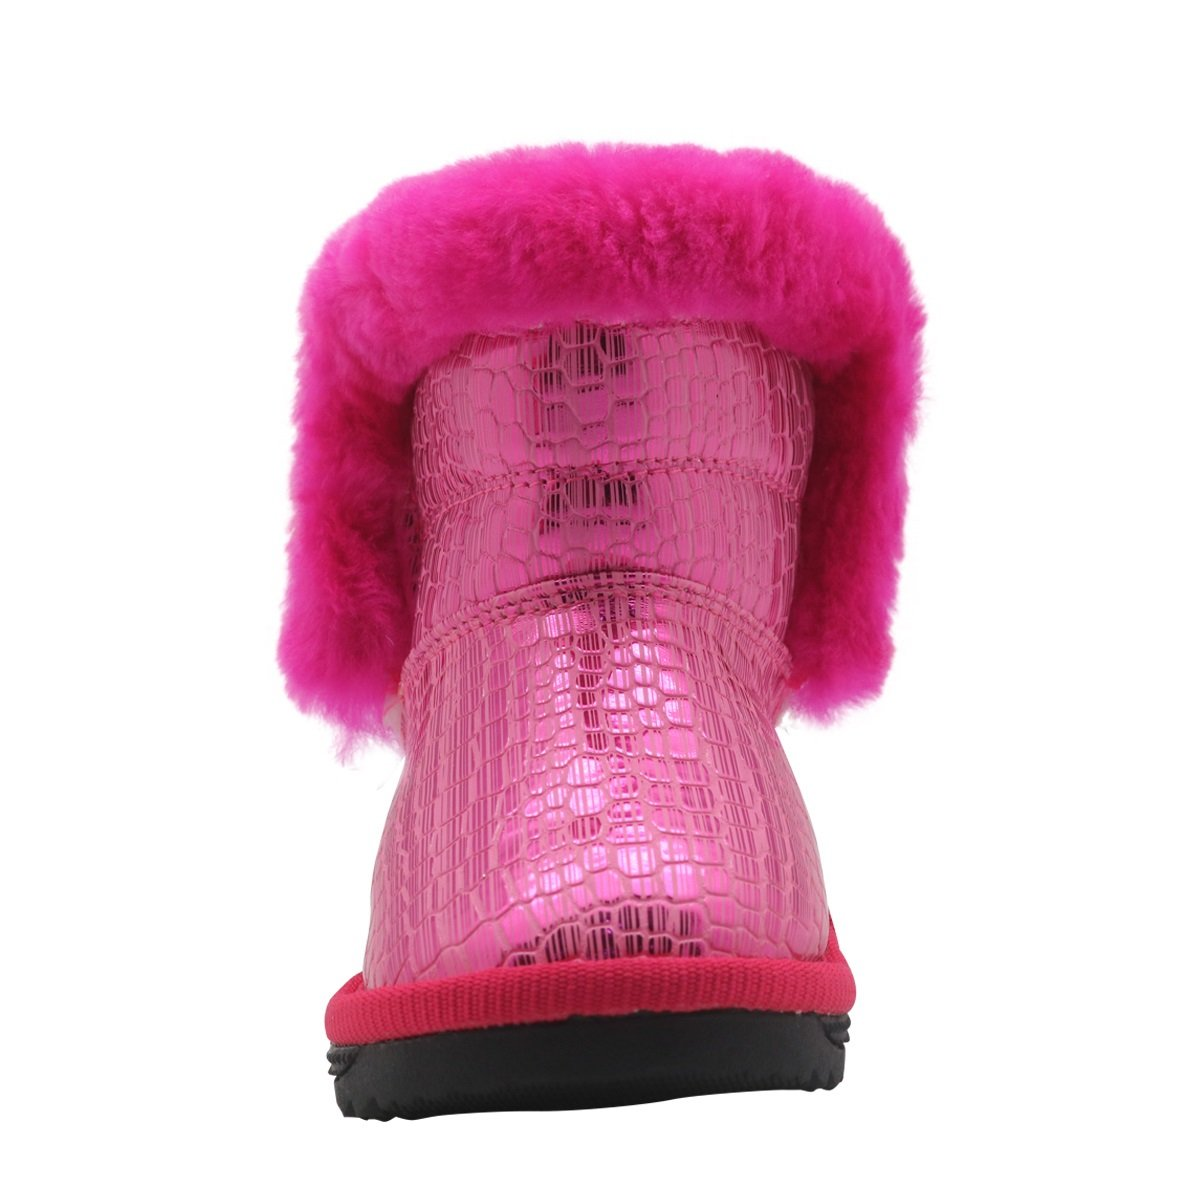 Non-Slip Toddler Shoes Girls Warm Winter Flat Shoes Fur Snow Boots with Woolen Lining Durable Color : Pink , Size : 10 M US Toddler